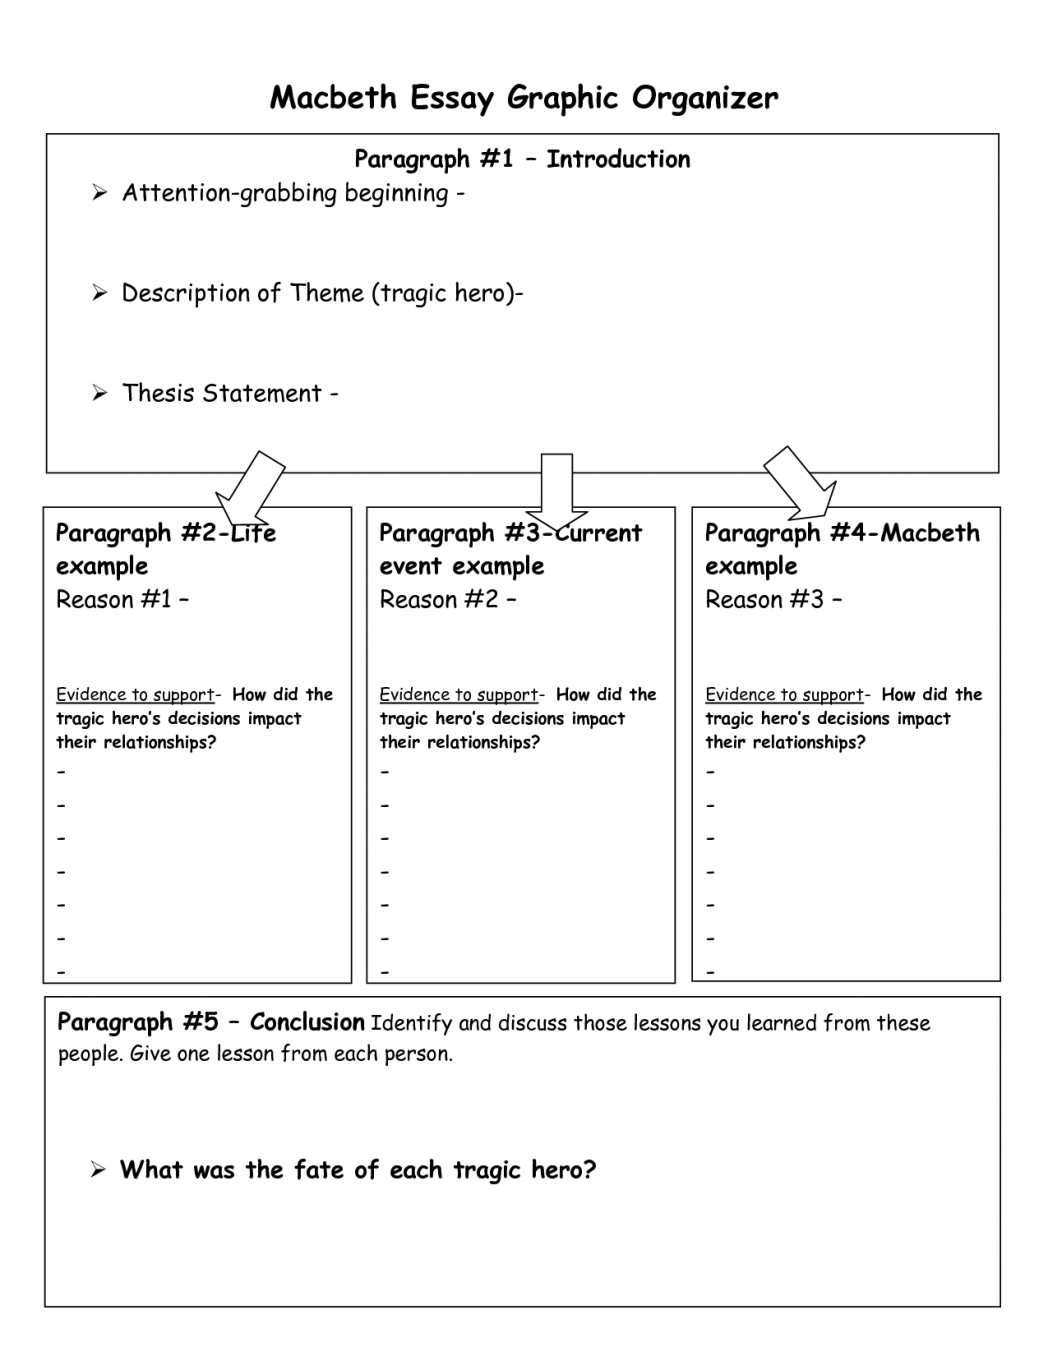 016 Graphic Essay Using Organizers For Writing Essays Summaries College Descriptive Argumentative Persuasive Organizer Literary Paragraph Free Informative 1048x1356 Amazing 3rd Grade 5th Middle School Full